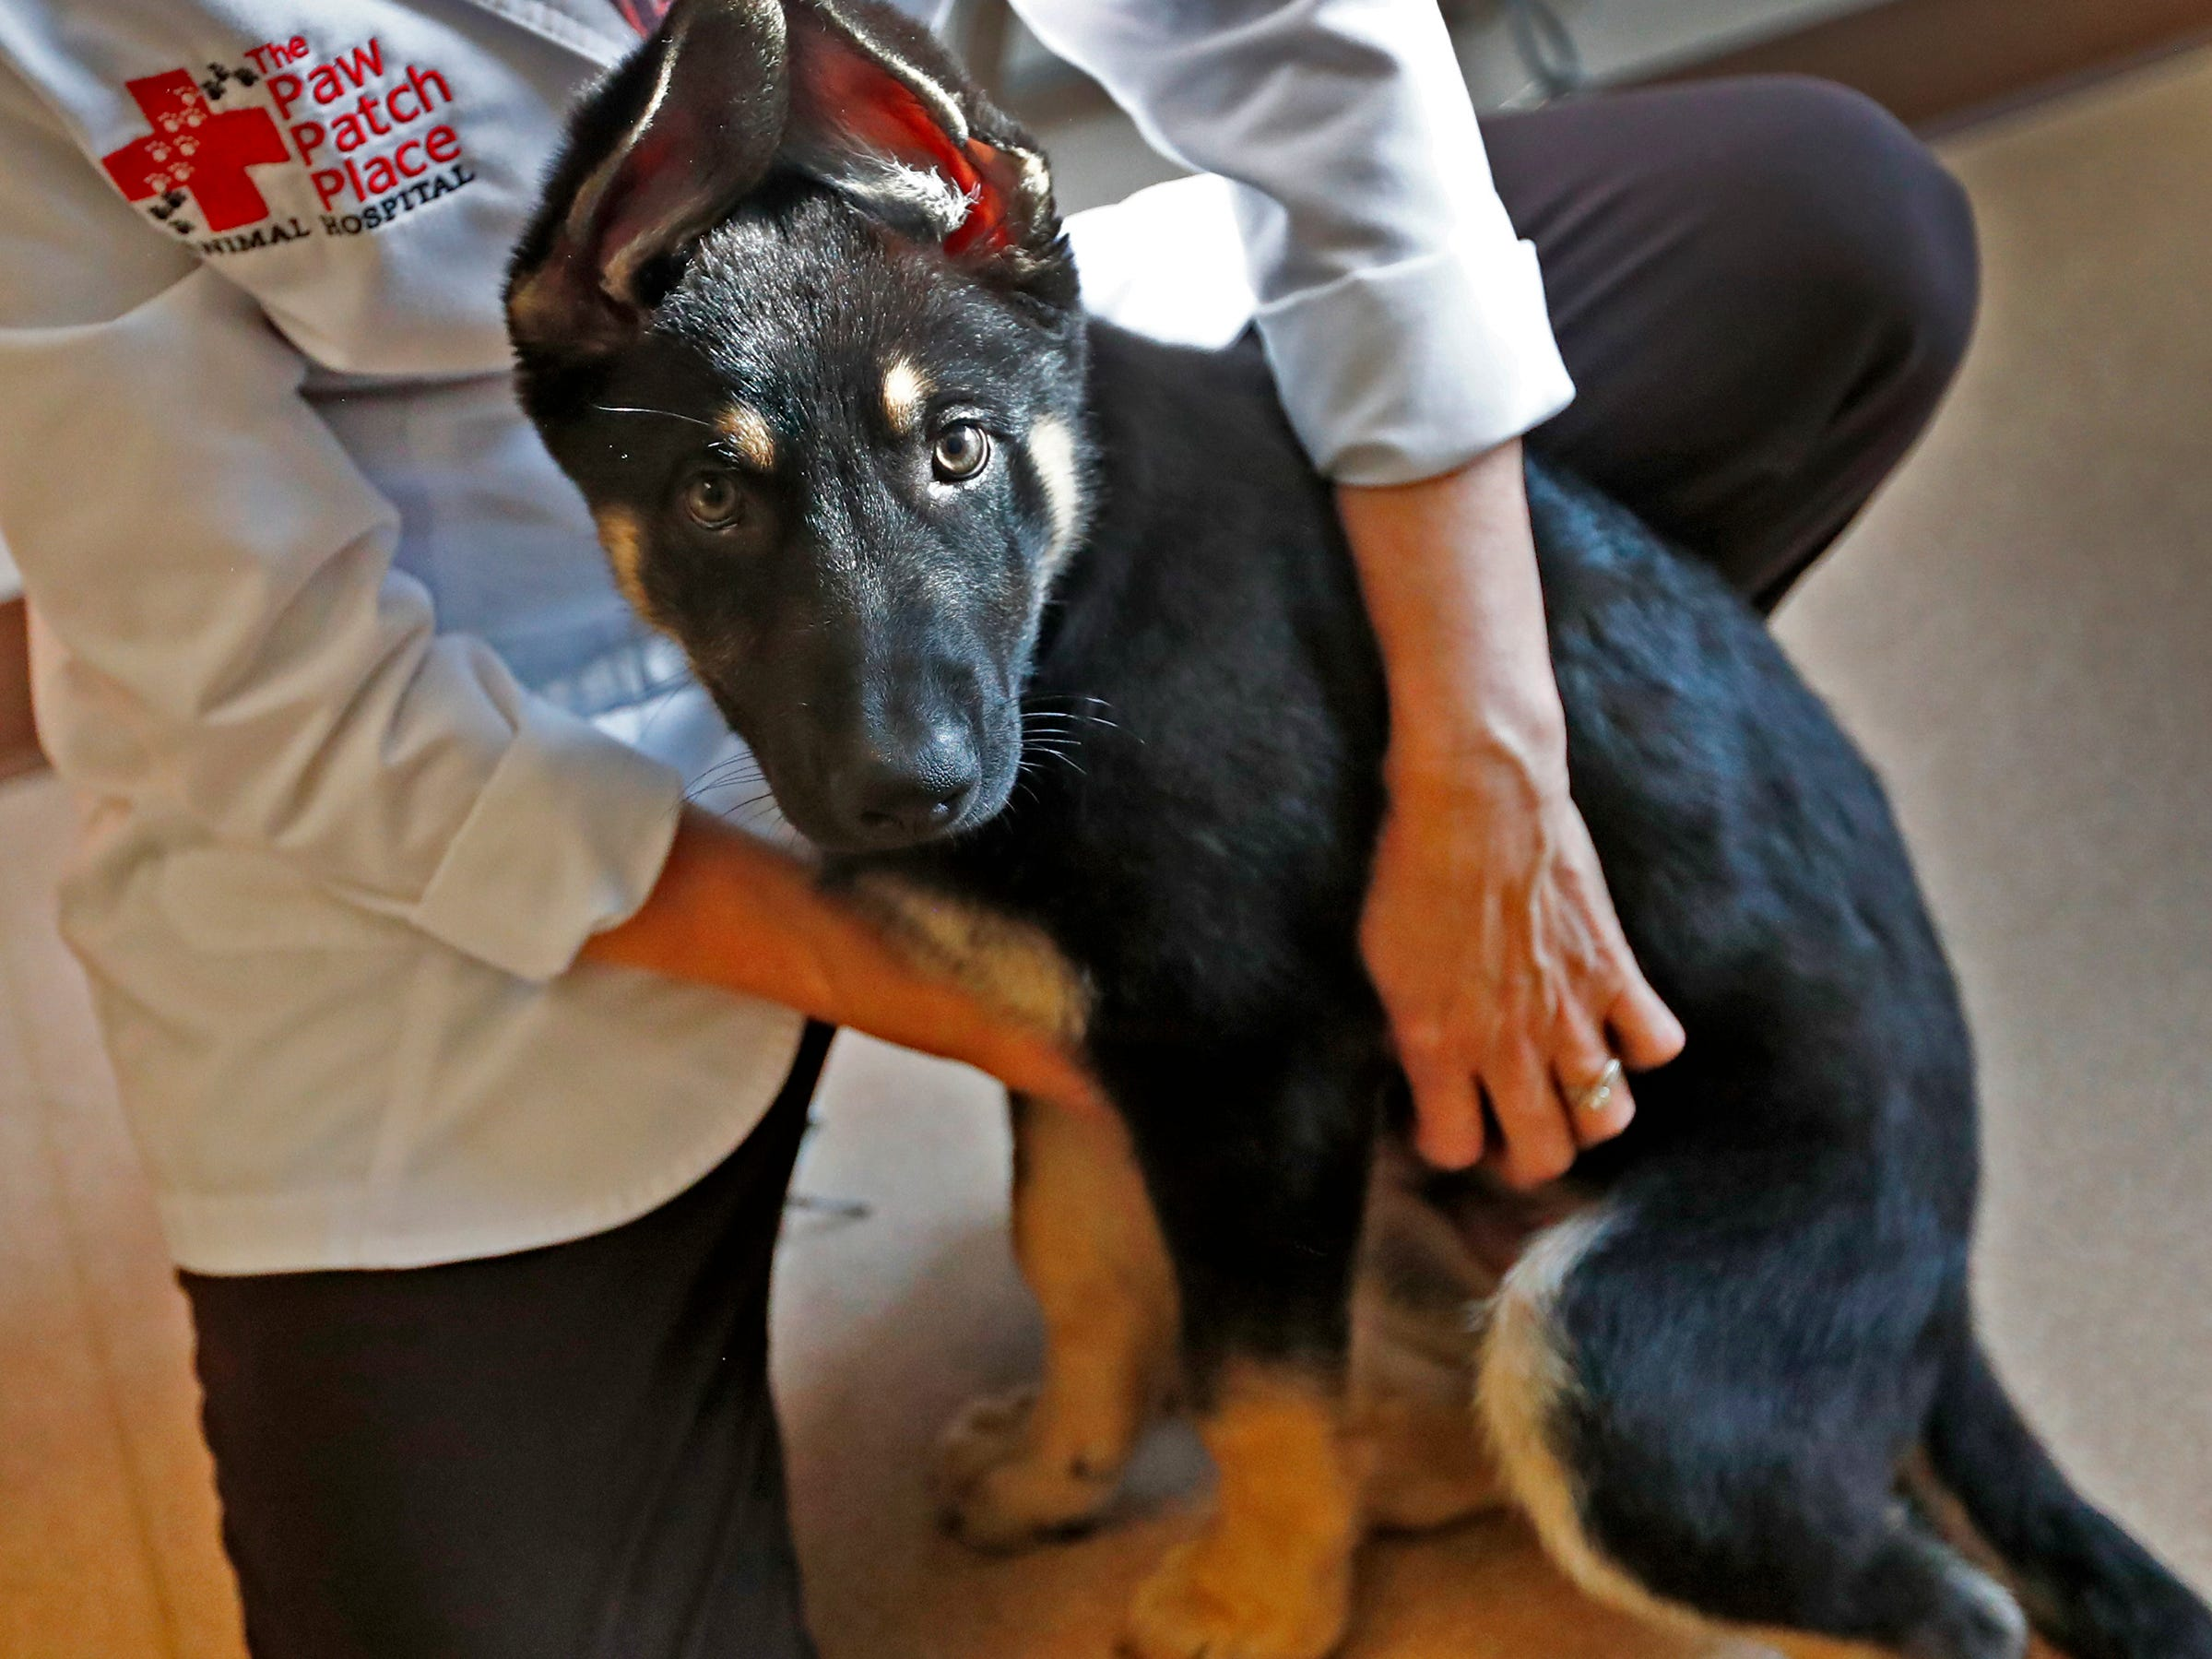 Spartacus sits still with Dr. Penny Dowden during his appointment at Paw Patch Place Animal Hospital, Friday, Aug. 31, 2018.  The veterinary clinic is the only one in Indiana to earn special fear free certification from an international program that aims to help vets reduce anxiety for pets prone to feel stressed in their offices.